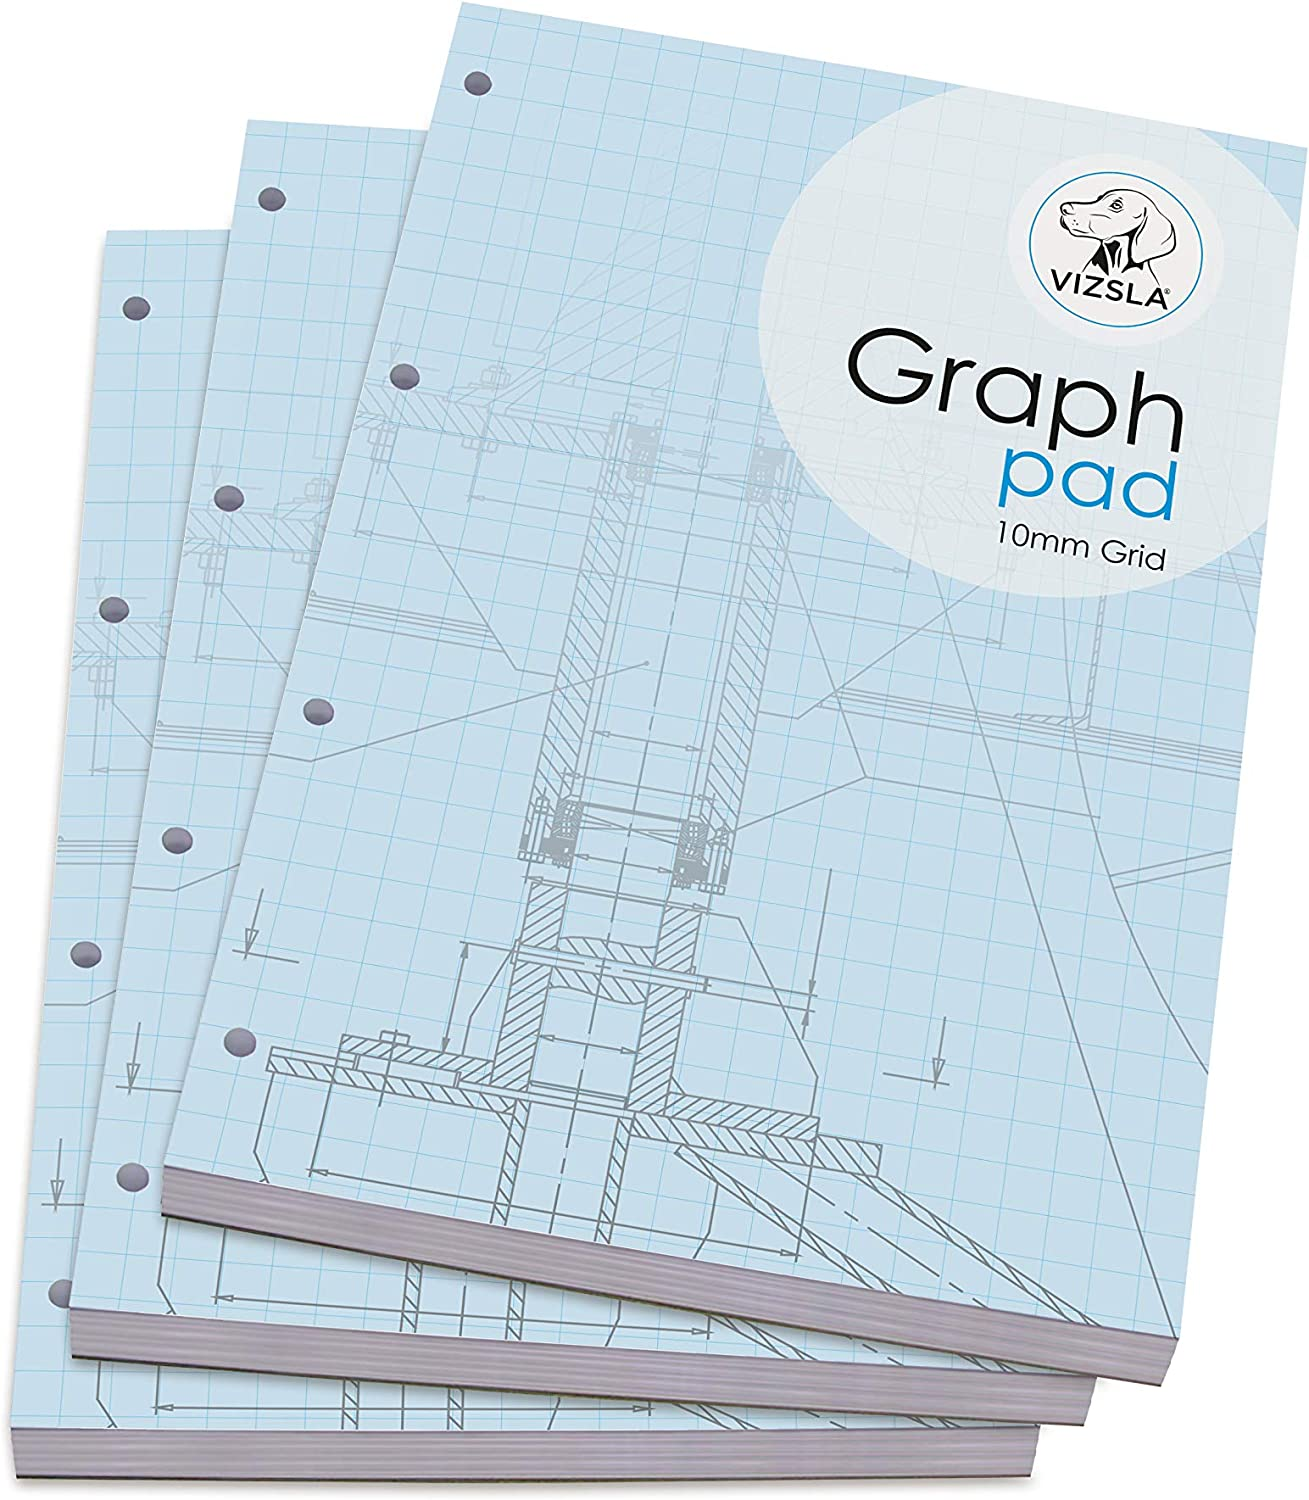 Vizsla Pack of 3 80gsm Paper 10mm Grid with Cover 175 Sheets per pad, A4 Graph pad